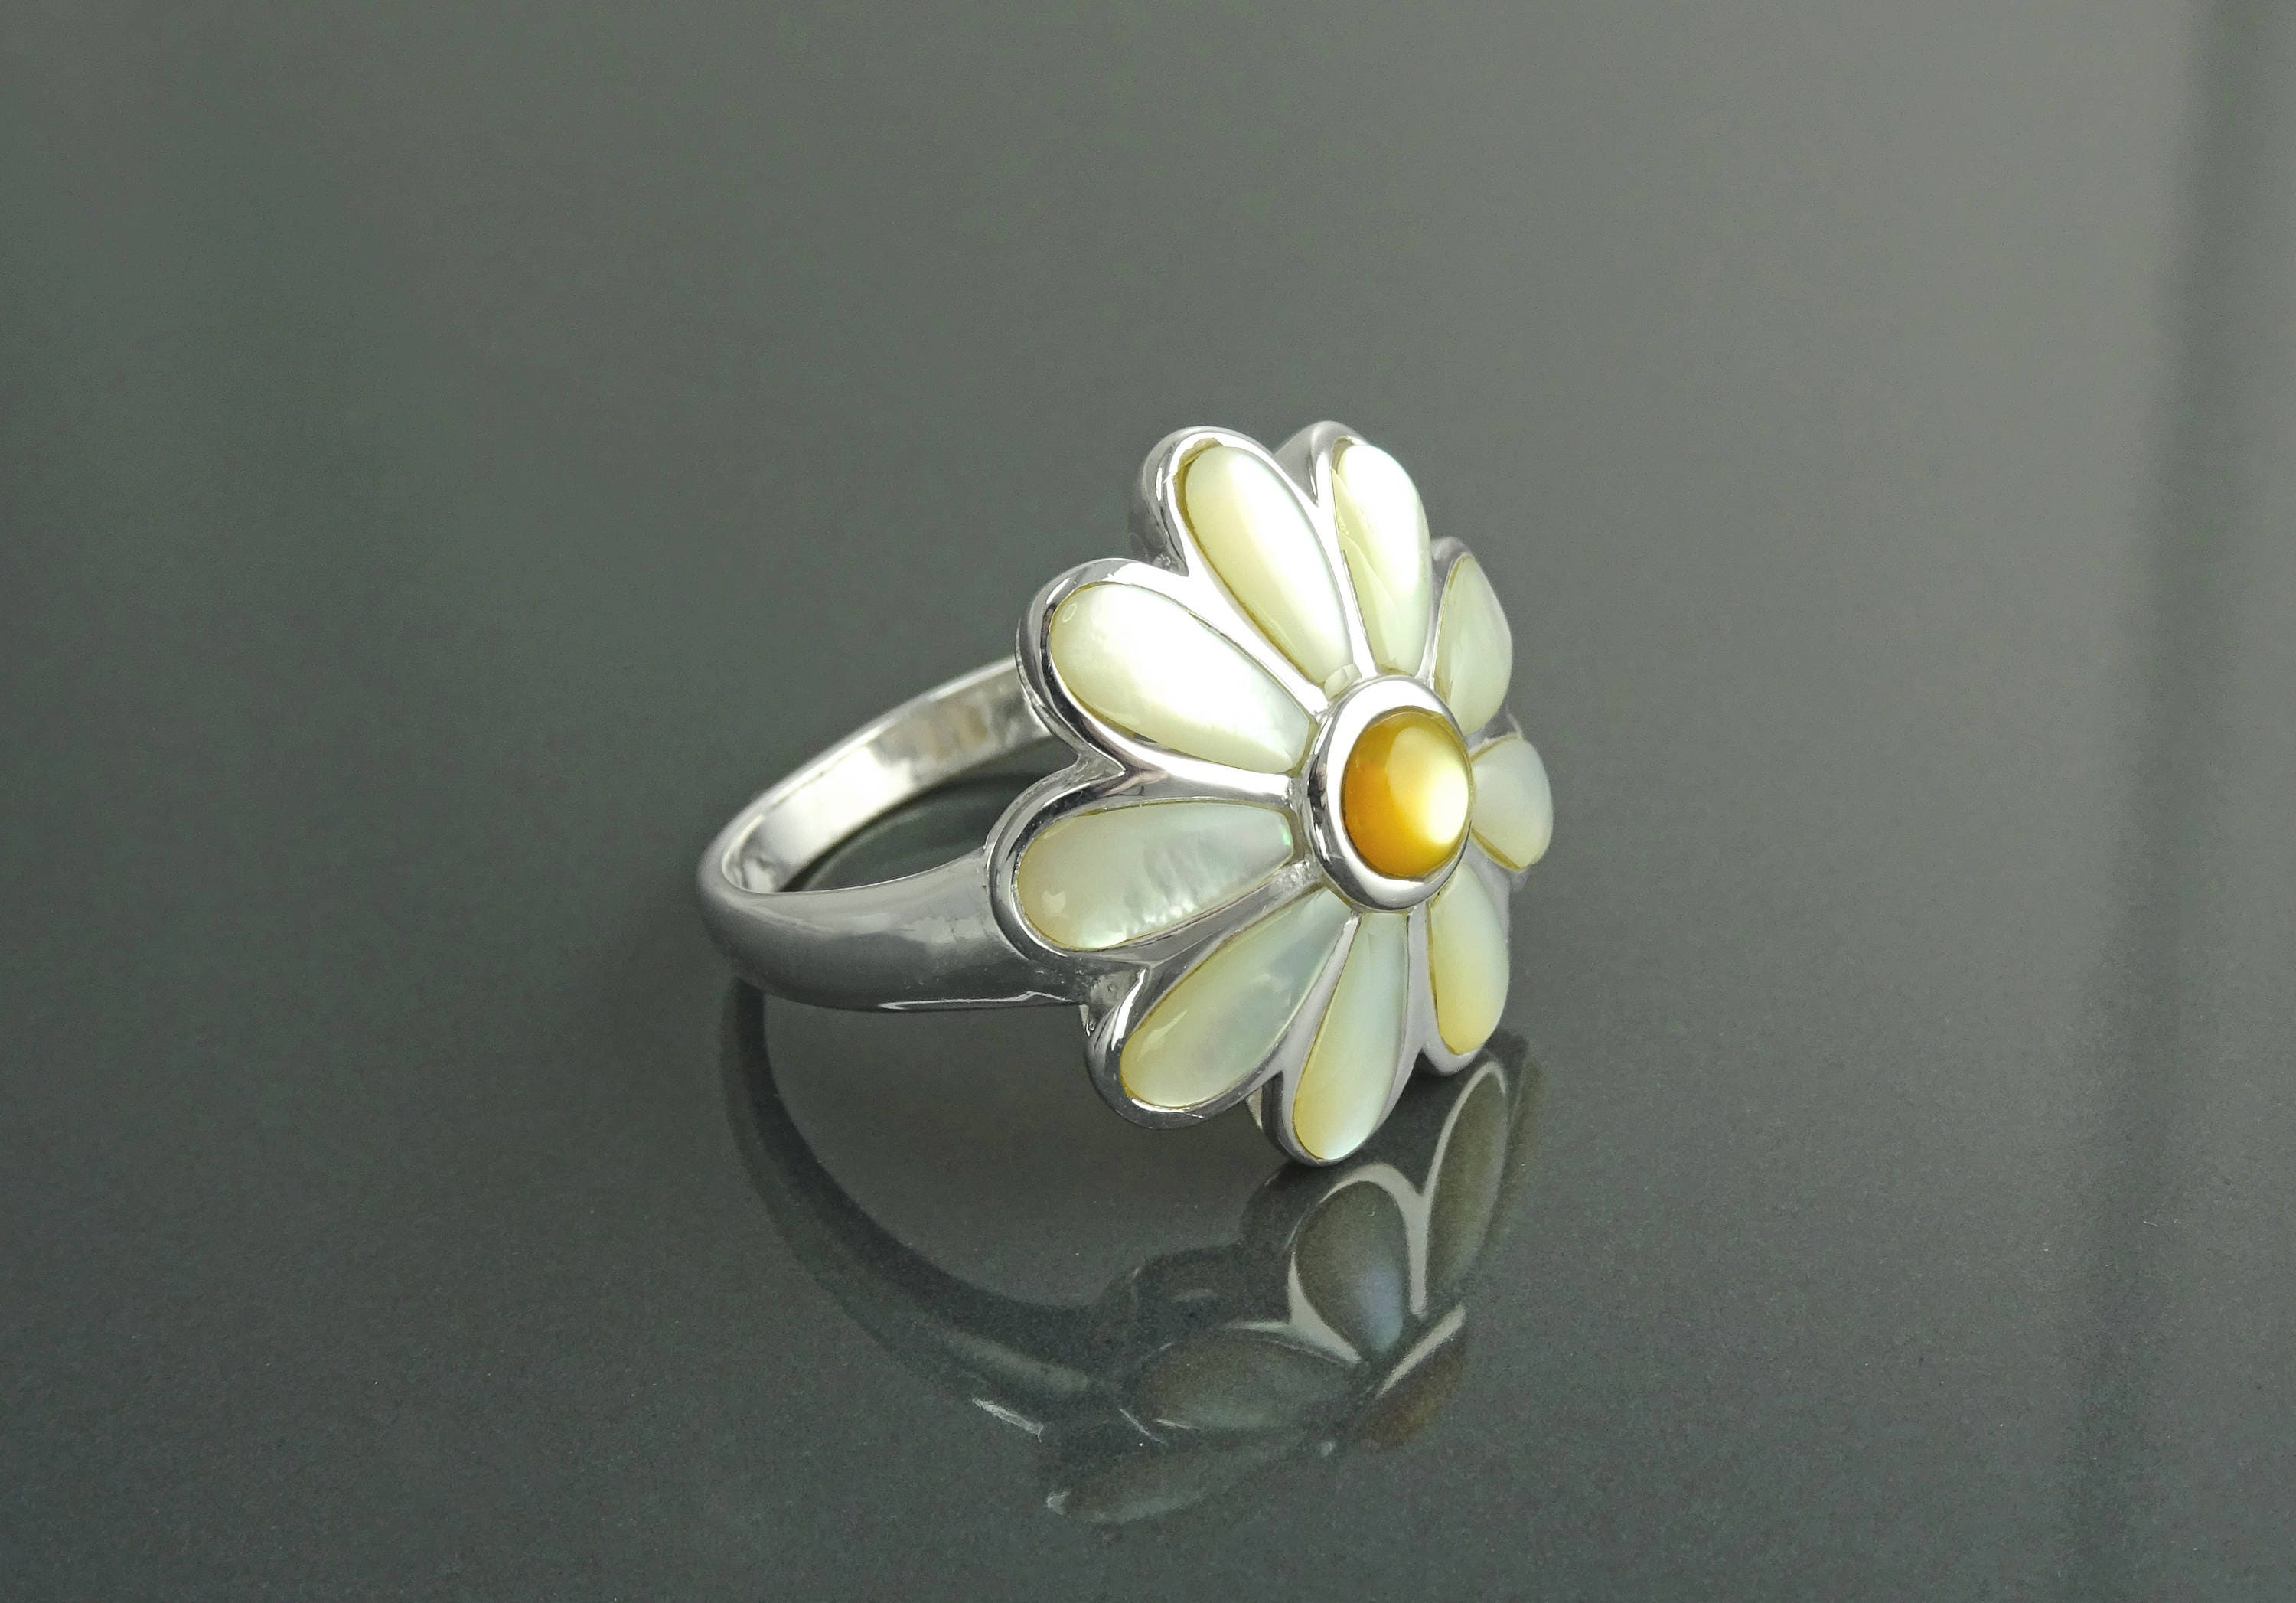 Daisy flower ring sterling silver genuine white mother of pearl daisy flower ring sterling silver genuine white mother of pearl petals daisies band ring flower ring blossom floral ringnature jewelry izmirmasajfo Image collections